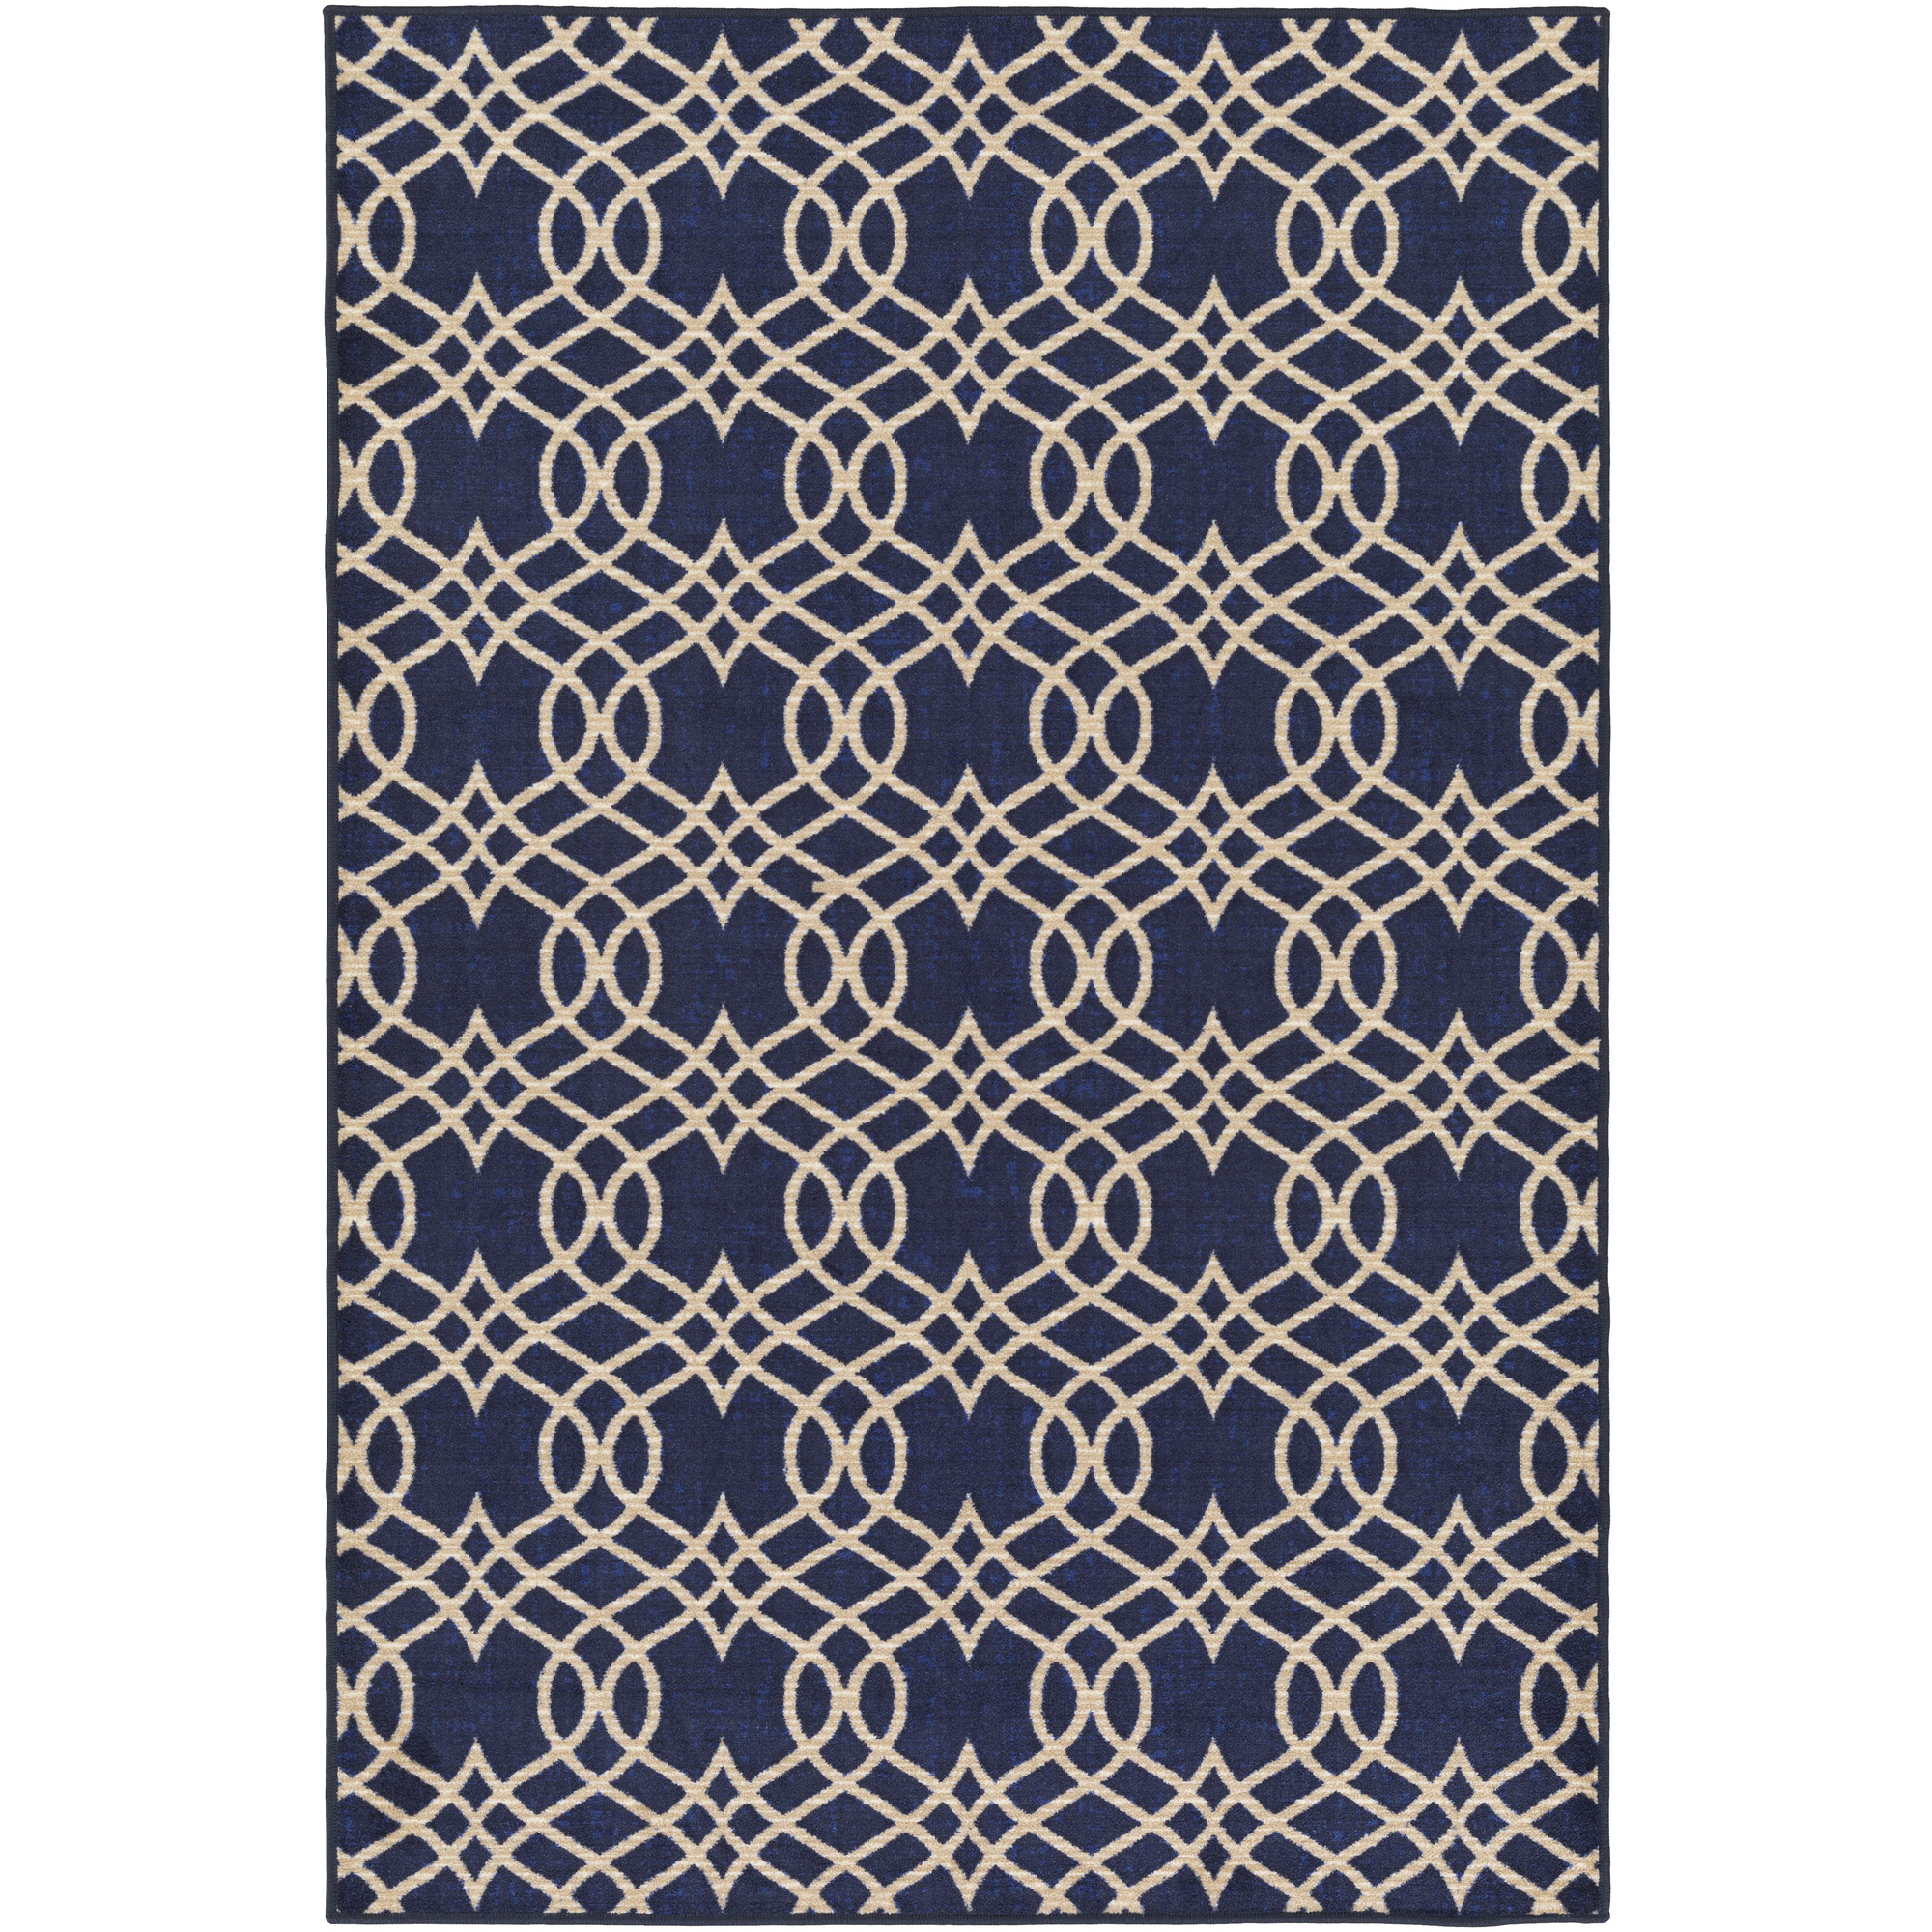 "Art of Knot Alrover 1'10"" x 3' Rectangular Area Rug"